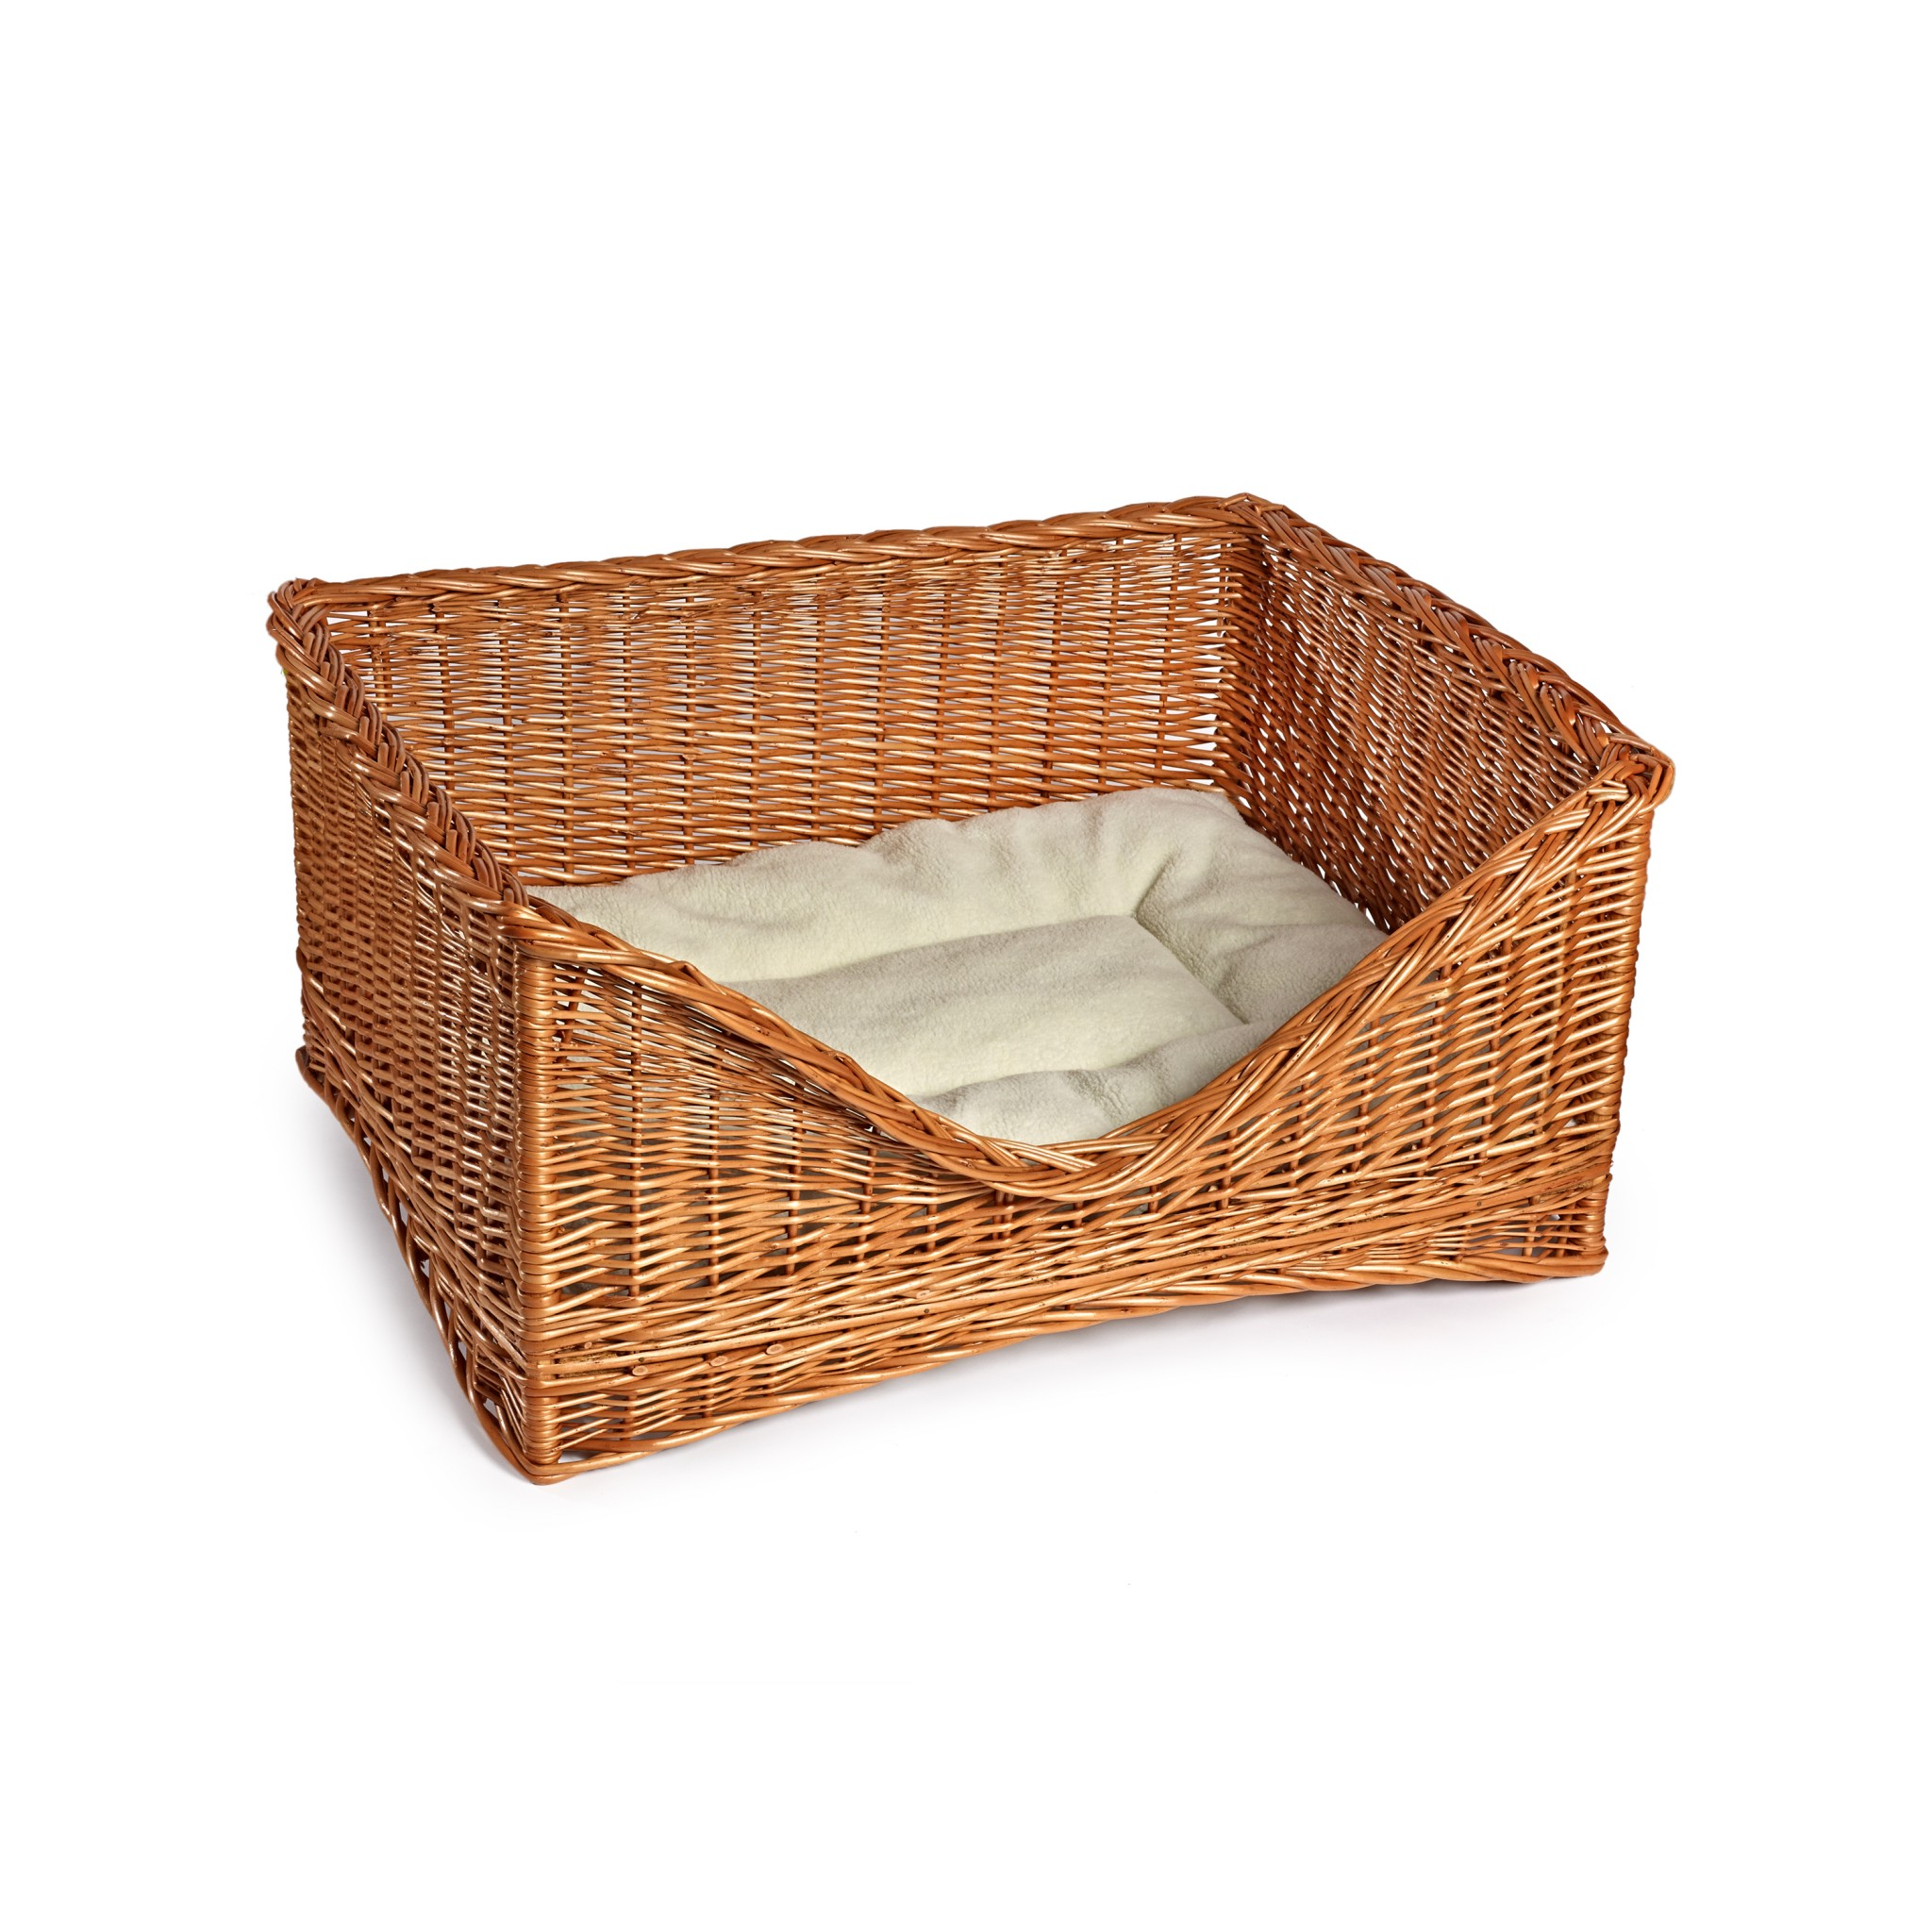 RECTANGLE WICKER DOG BASKET BED HIGH QUALITY SMALL MEDIUM LARGE HAND CRAFTED